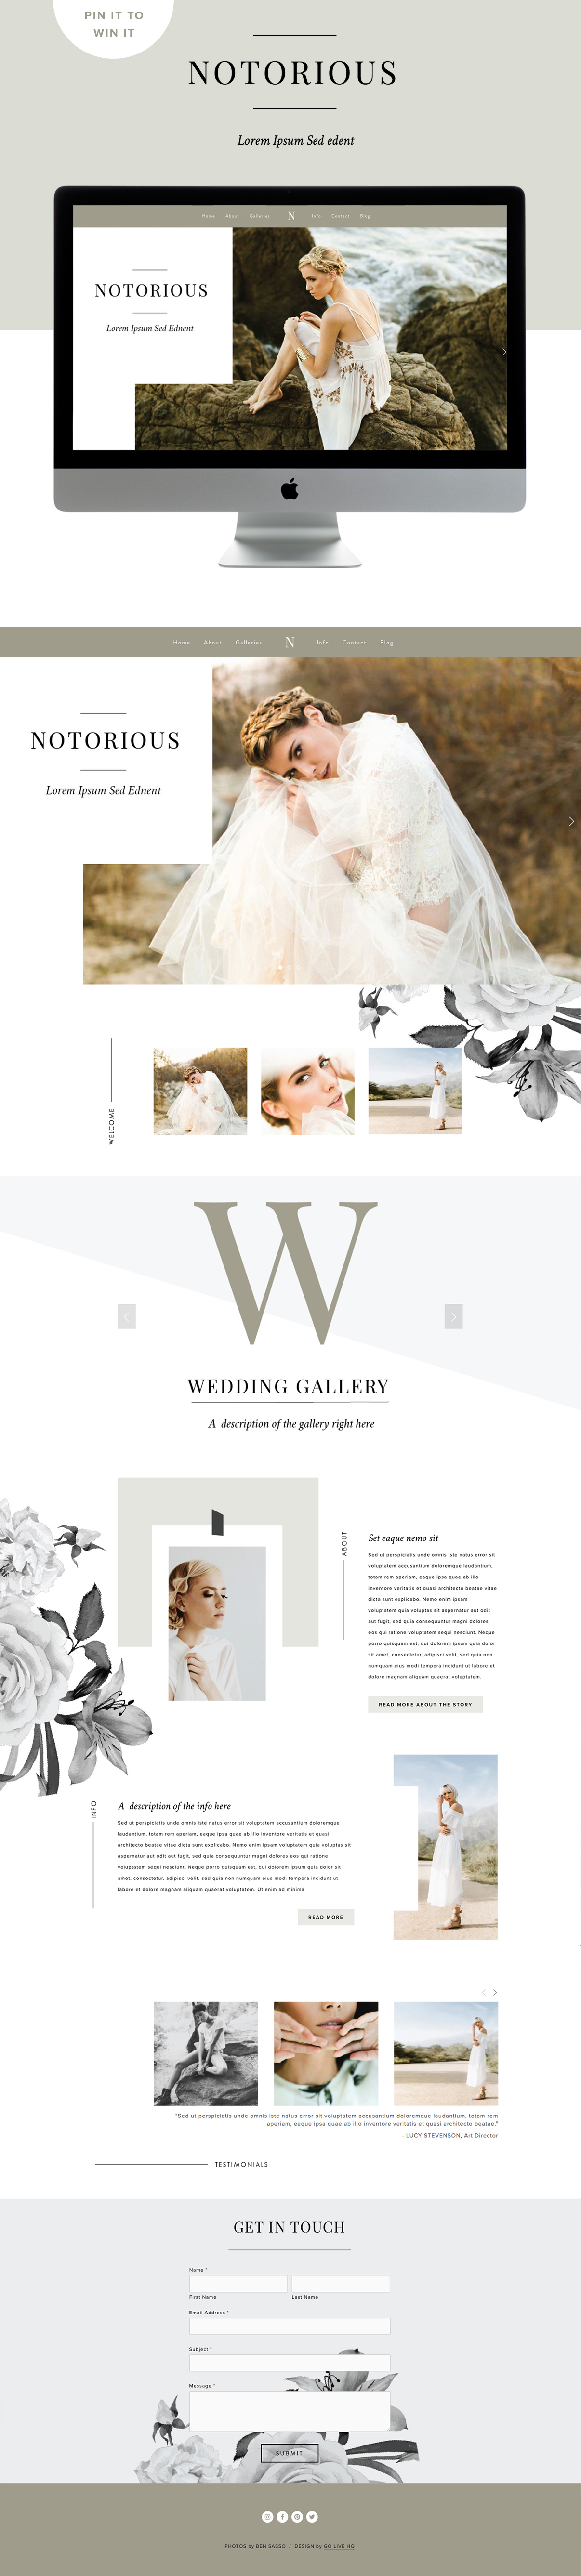 custom squarespace template inspiration